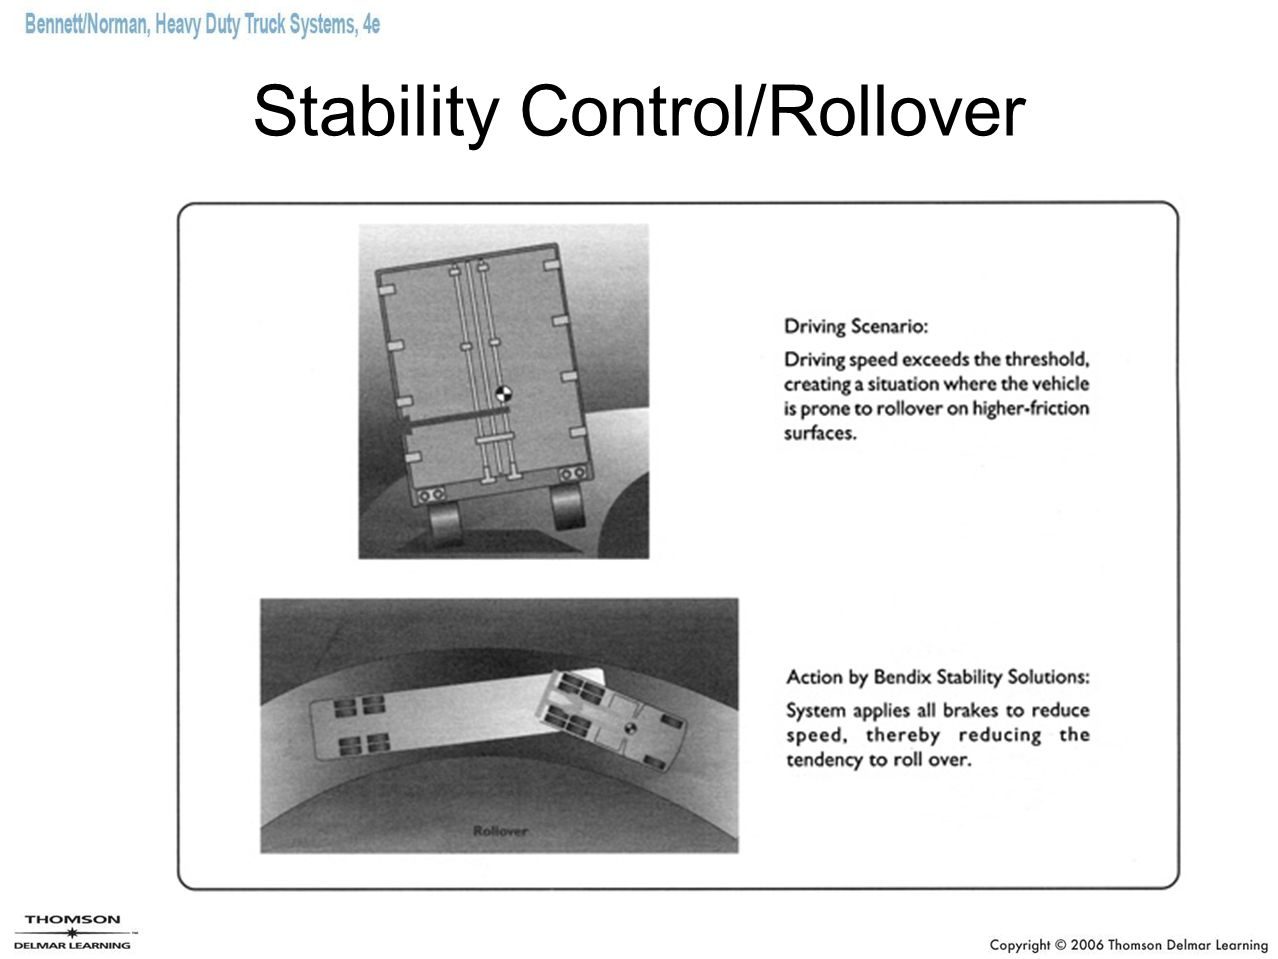 Stability Control/Rollover